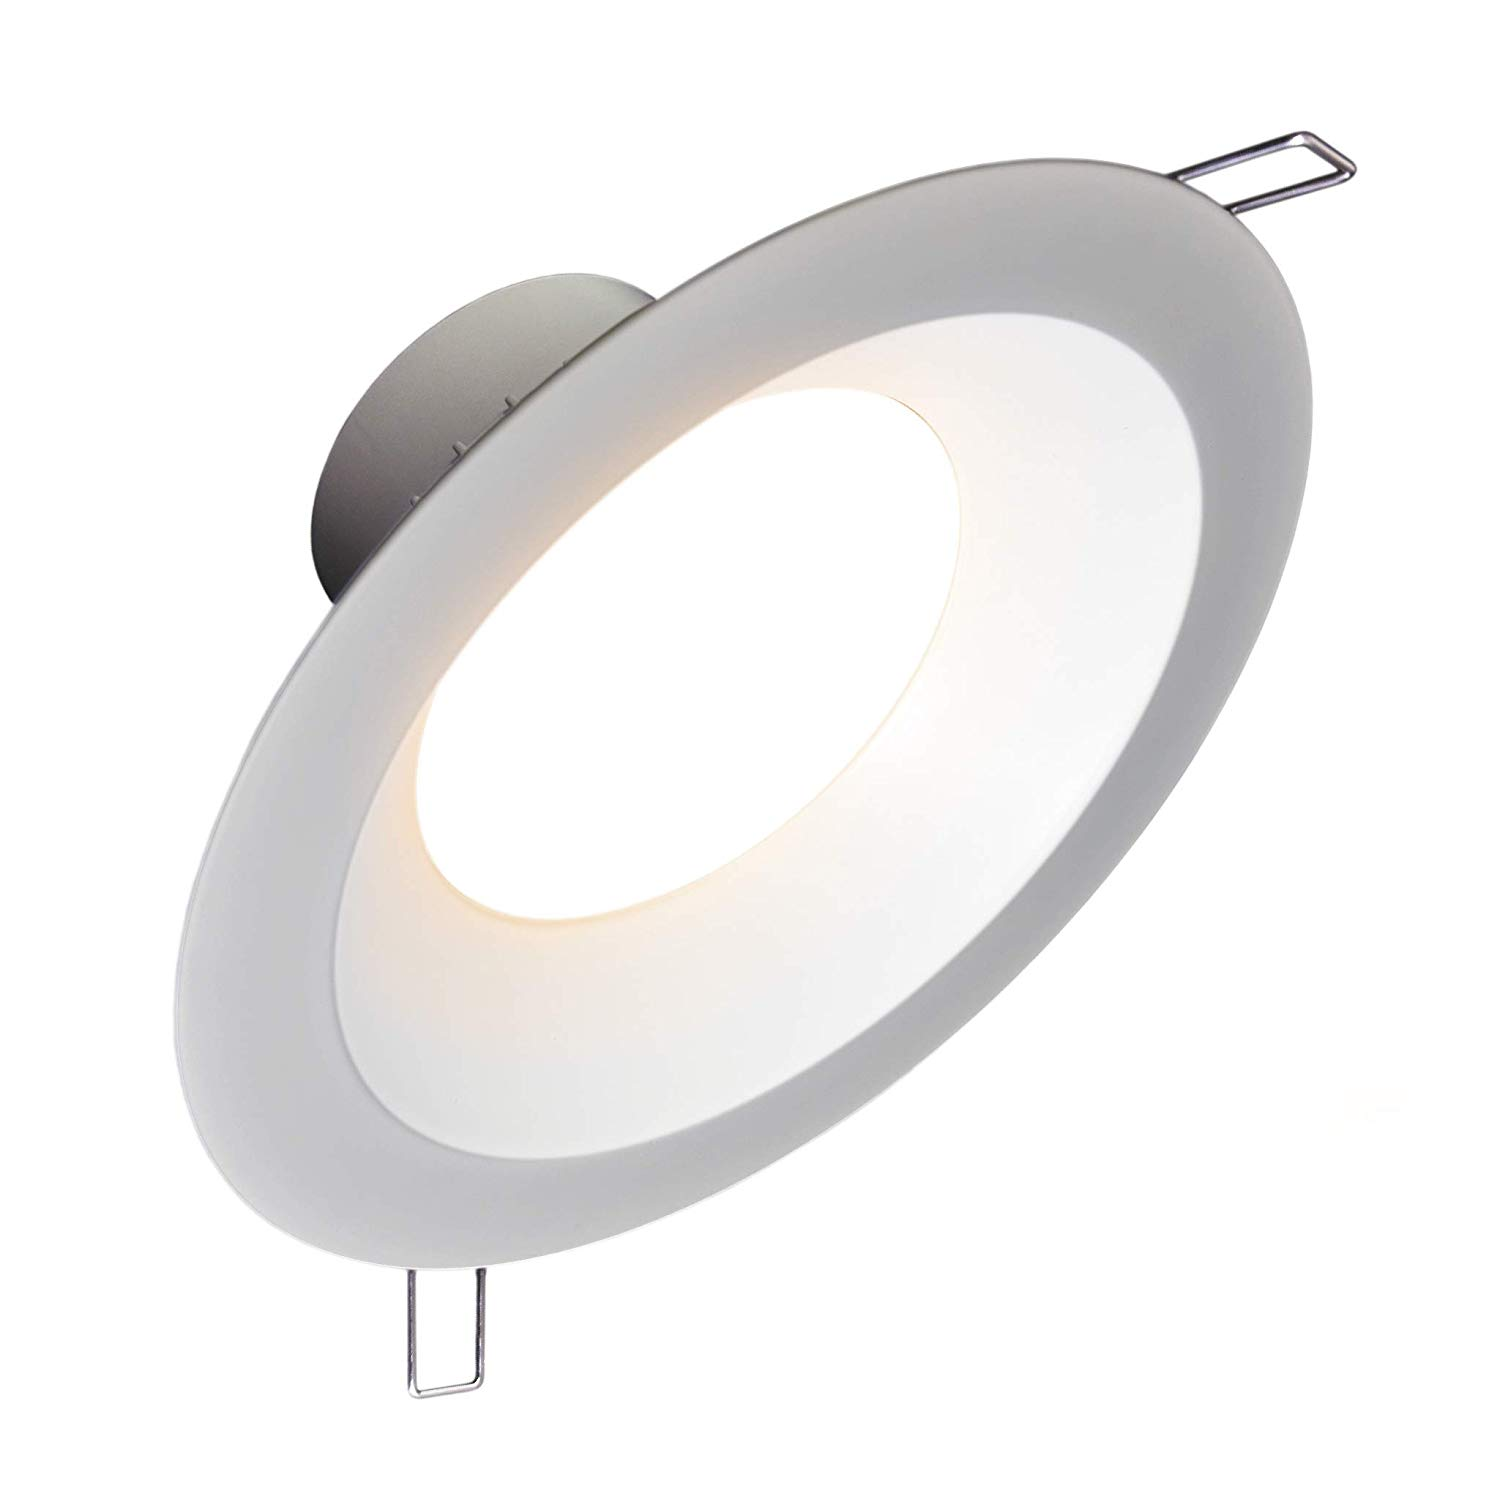 "8"" Inch (Canless Retrofit Module) LED Downlight 30W; 120-277V; Dimmable at 120V; 2500 Lumens; Round Lens; Intertek & Energy Star Listed; 5 Year Warranty (Warm-White 3000K)"